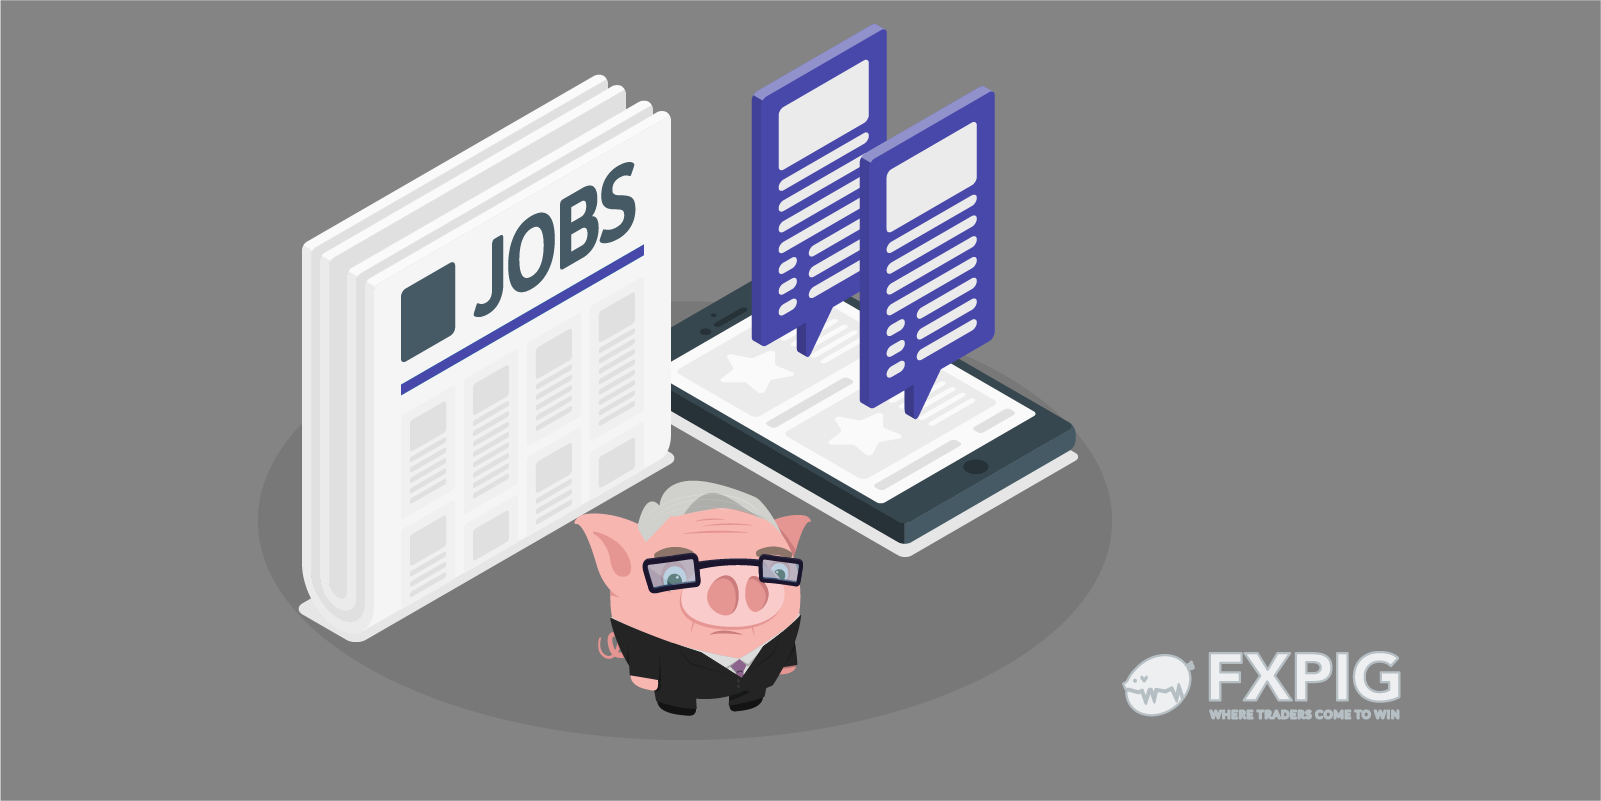 Jobs_report_Forex_weekAhead_FXPIG